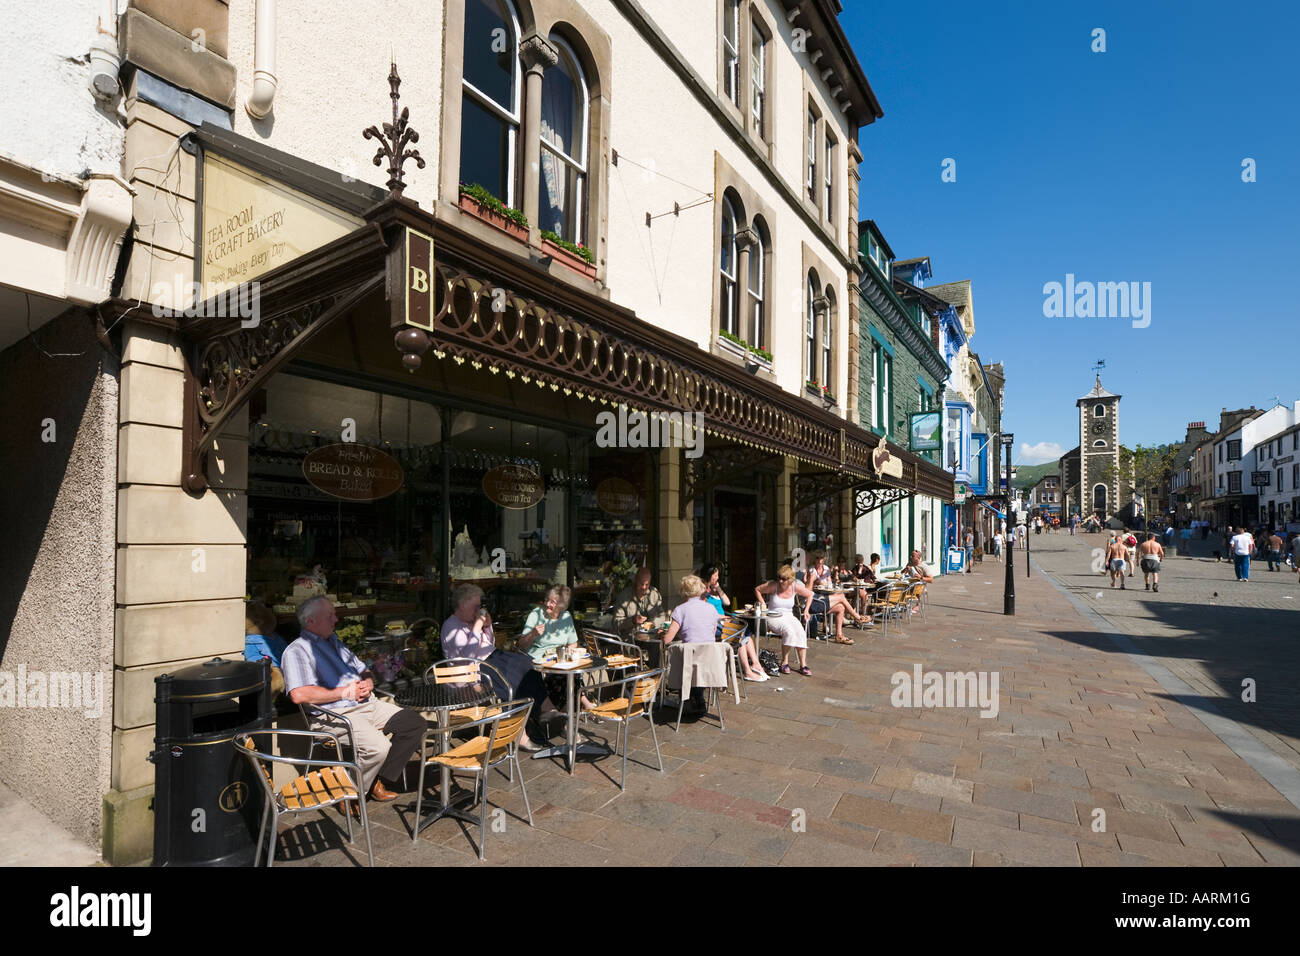 Cafe in the town centre with Moot Hall in the background, Keswick, Lake District, Cumbria, England, UK - Stock Image